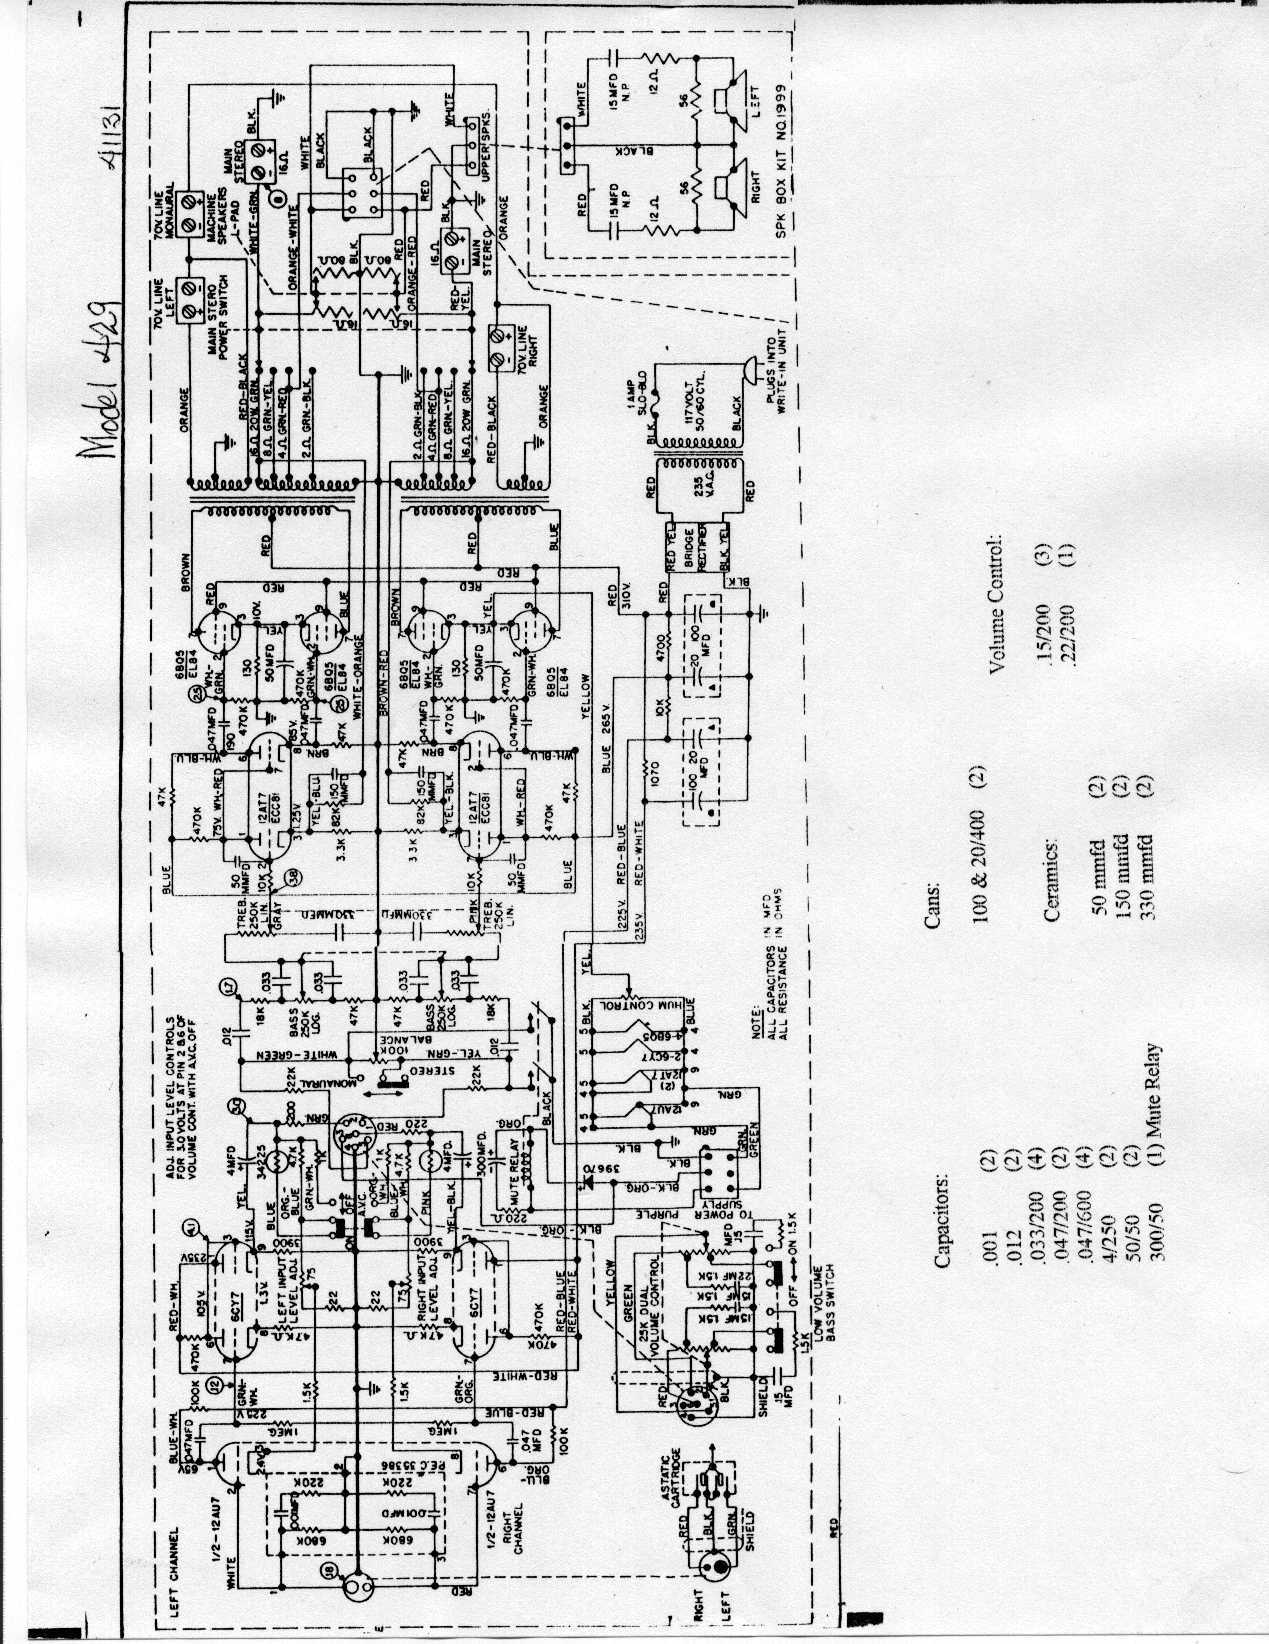 Jukebox List Wiring Diagram For Amplifier A Rock